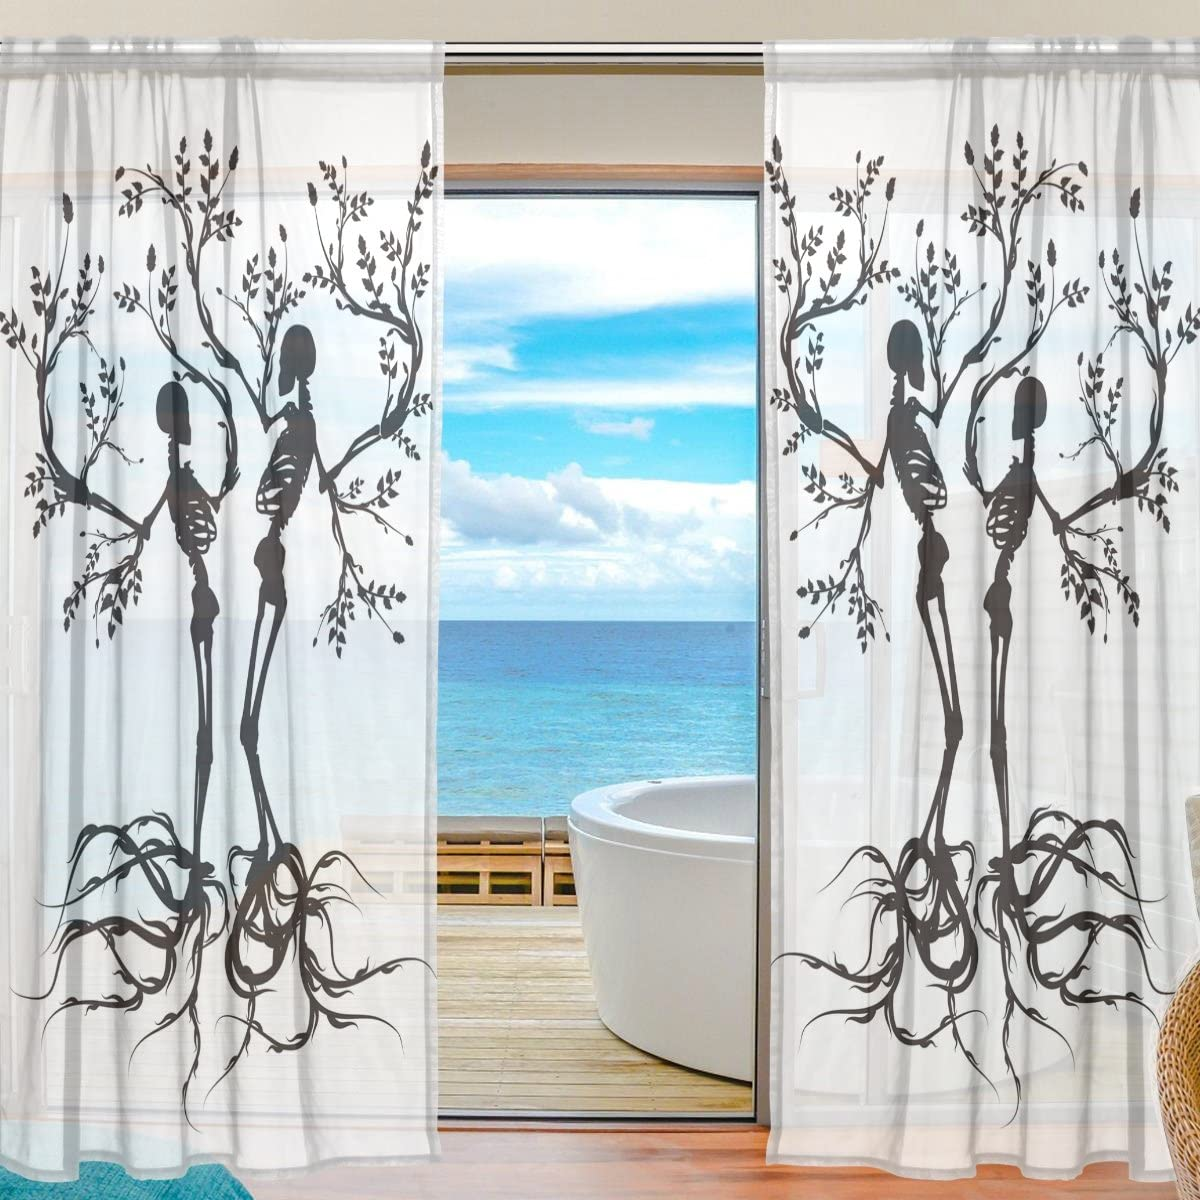 SEULIFE Window Sheer Curtain Skull Tree of Life Voile Curtain Drapes for Door Kitchen Living Room Bedroom 55×84 inches 2 Panels